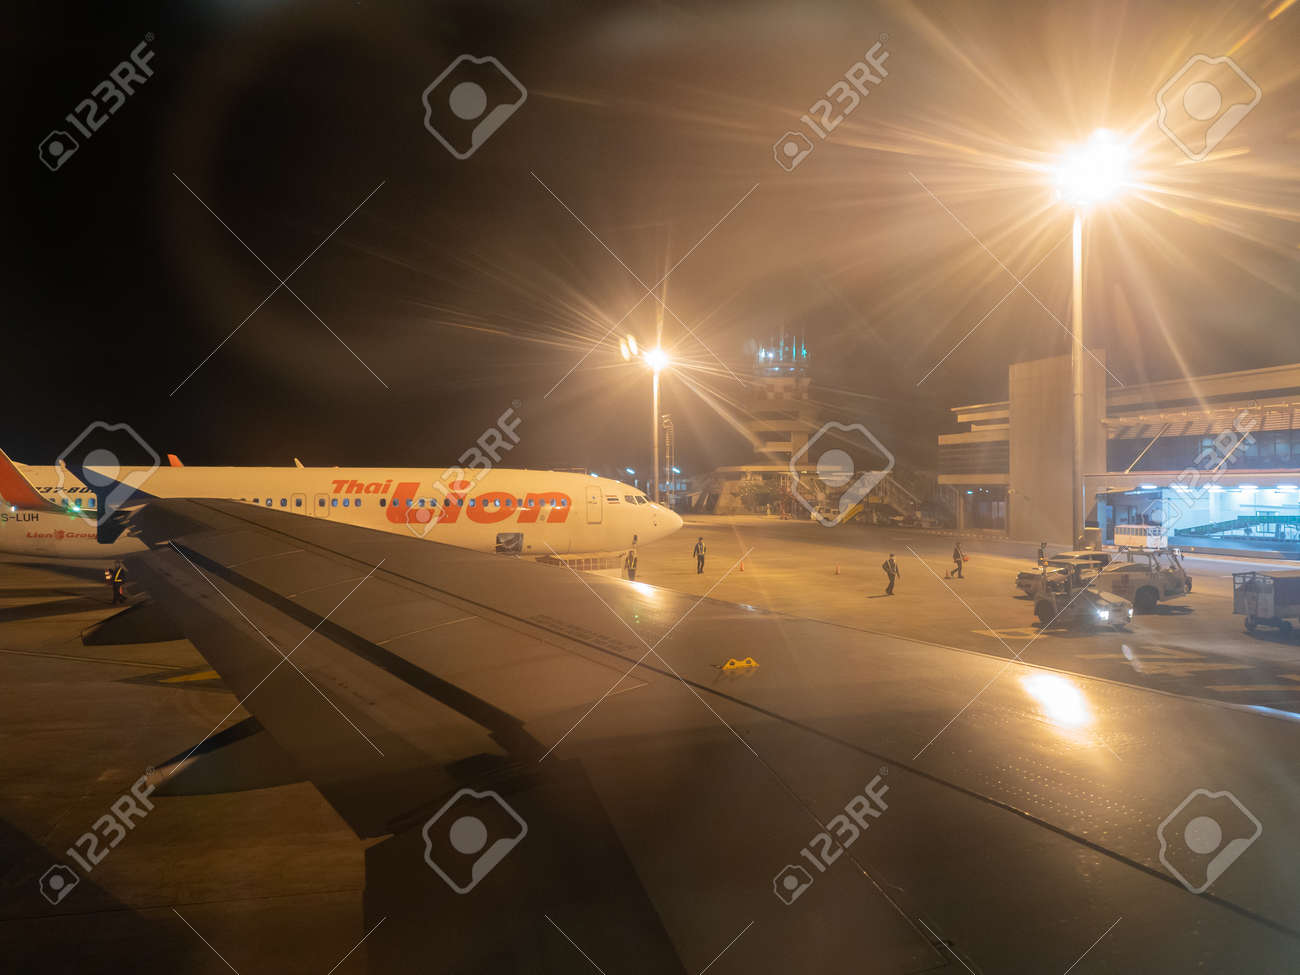 Udon Thani, Thailand - 17 Desember, 2017: Airplane parking on Udon Thani International Airport, Thailand, Thai Lion Airlines and the Fair Light of the High Light Pillar at the airport at night. - 129934539